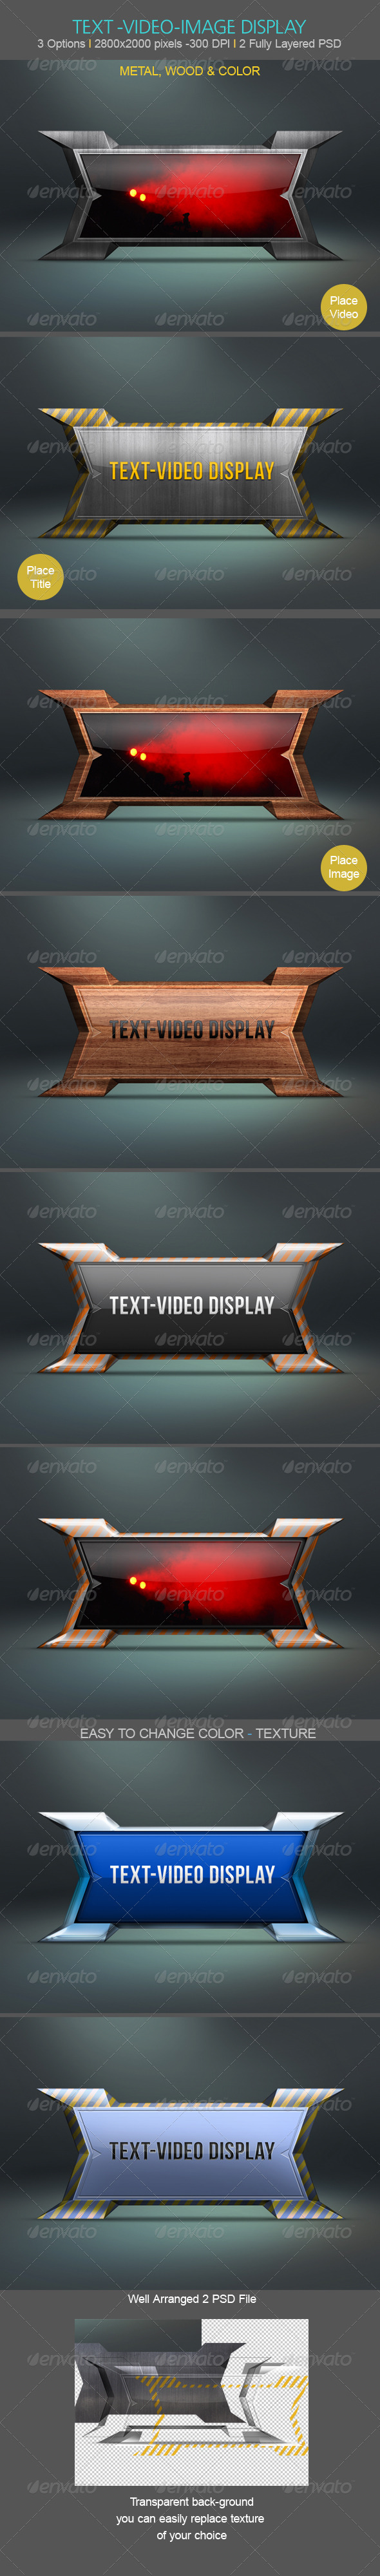 Text-Video-Image Desplay - Tech / Futuristic Photo Templates